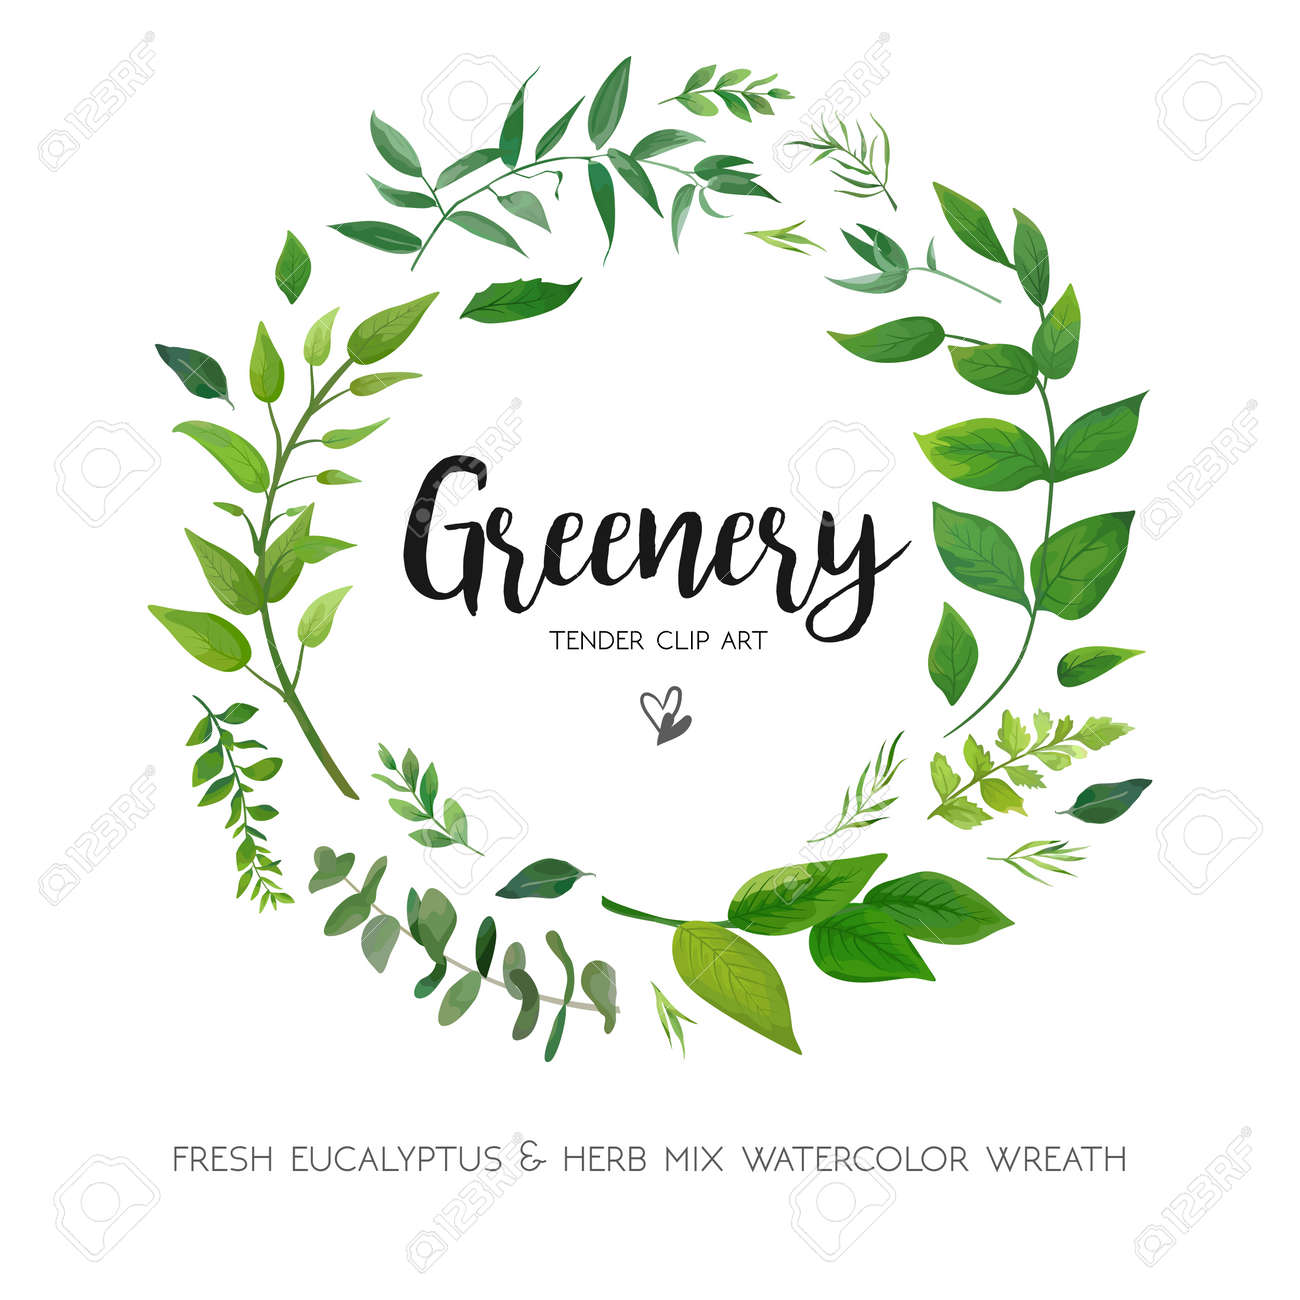 Floral card design with green Eucalyptus fern leaves. Elegant greenery, herbs forest round, circle wreath beautiful cute rustic frame border print. - 92843498